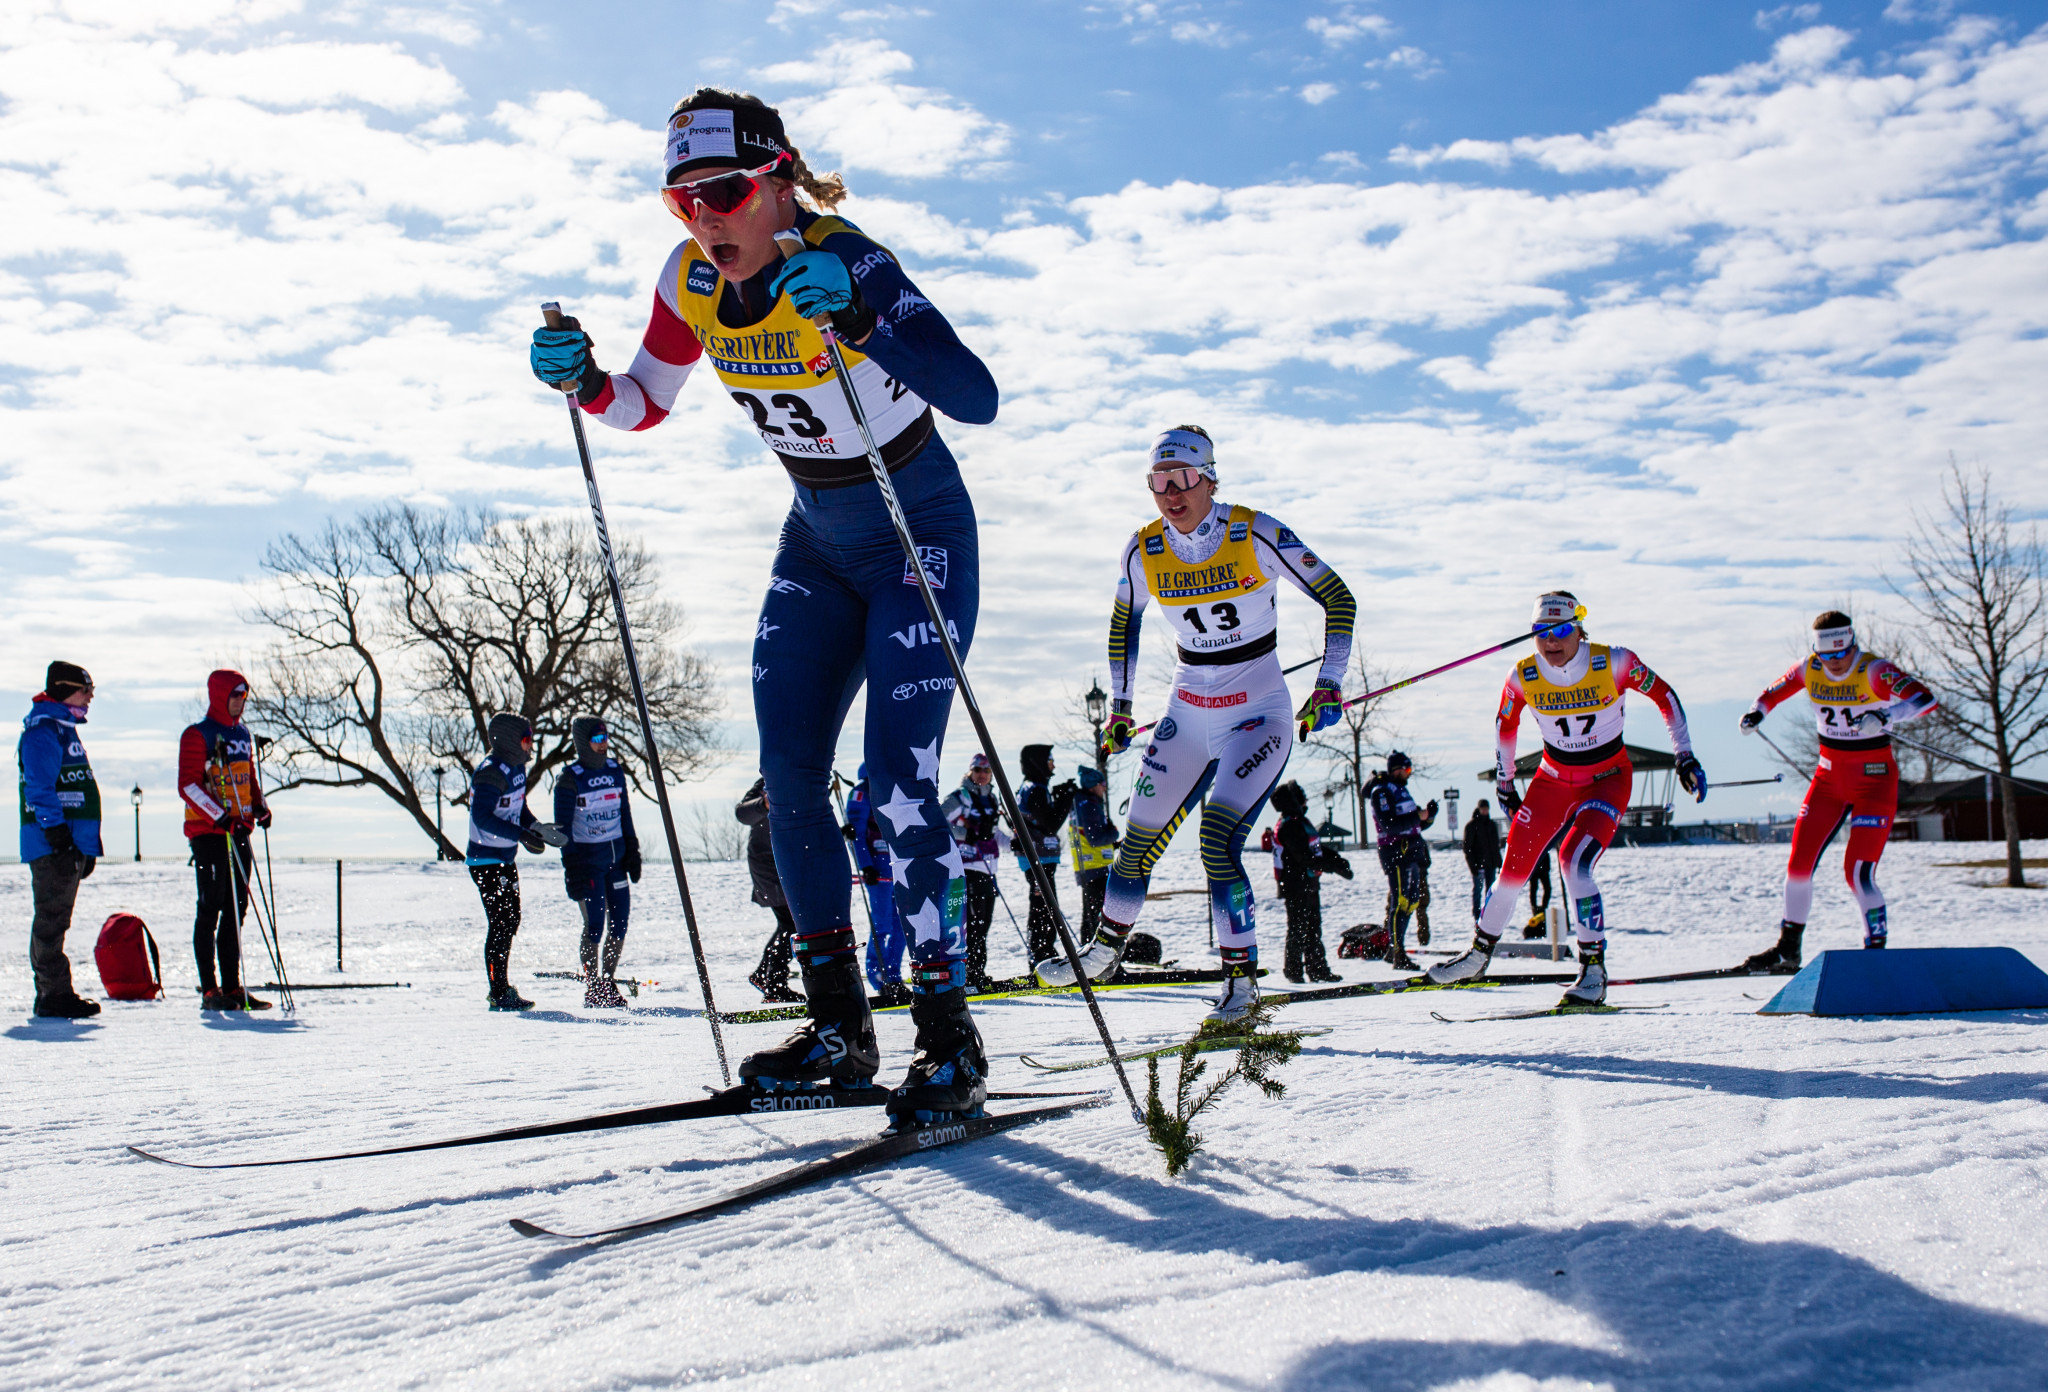 Jeff Ellis will oversee Nordiq Canada's annual events calendar, which will include International Ski Federation Cross Country Ski World Cup ©Getty Images